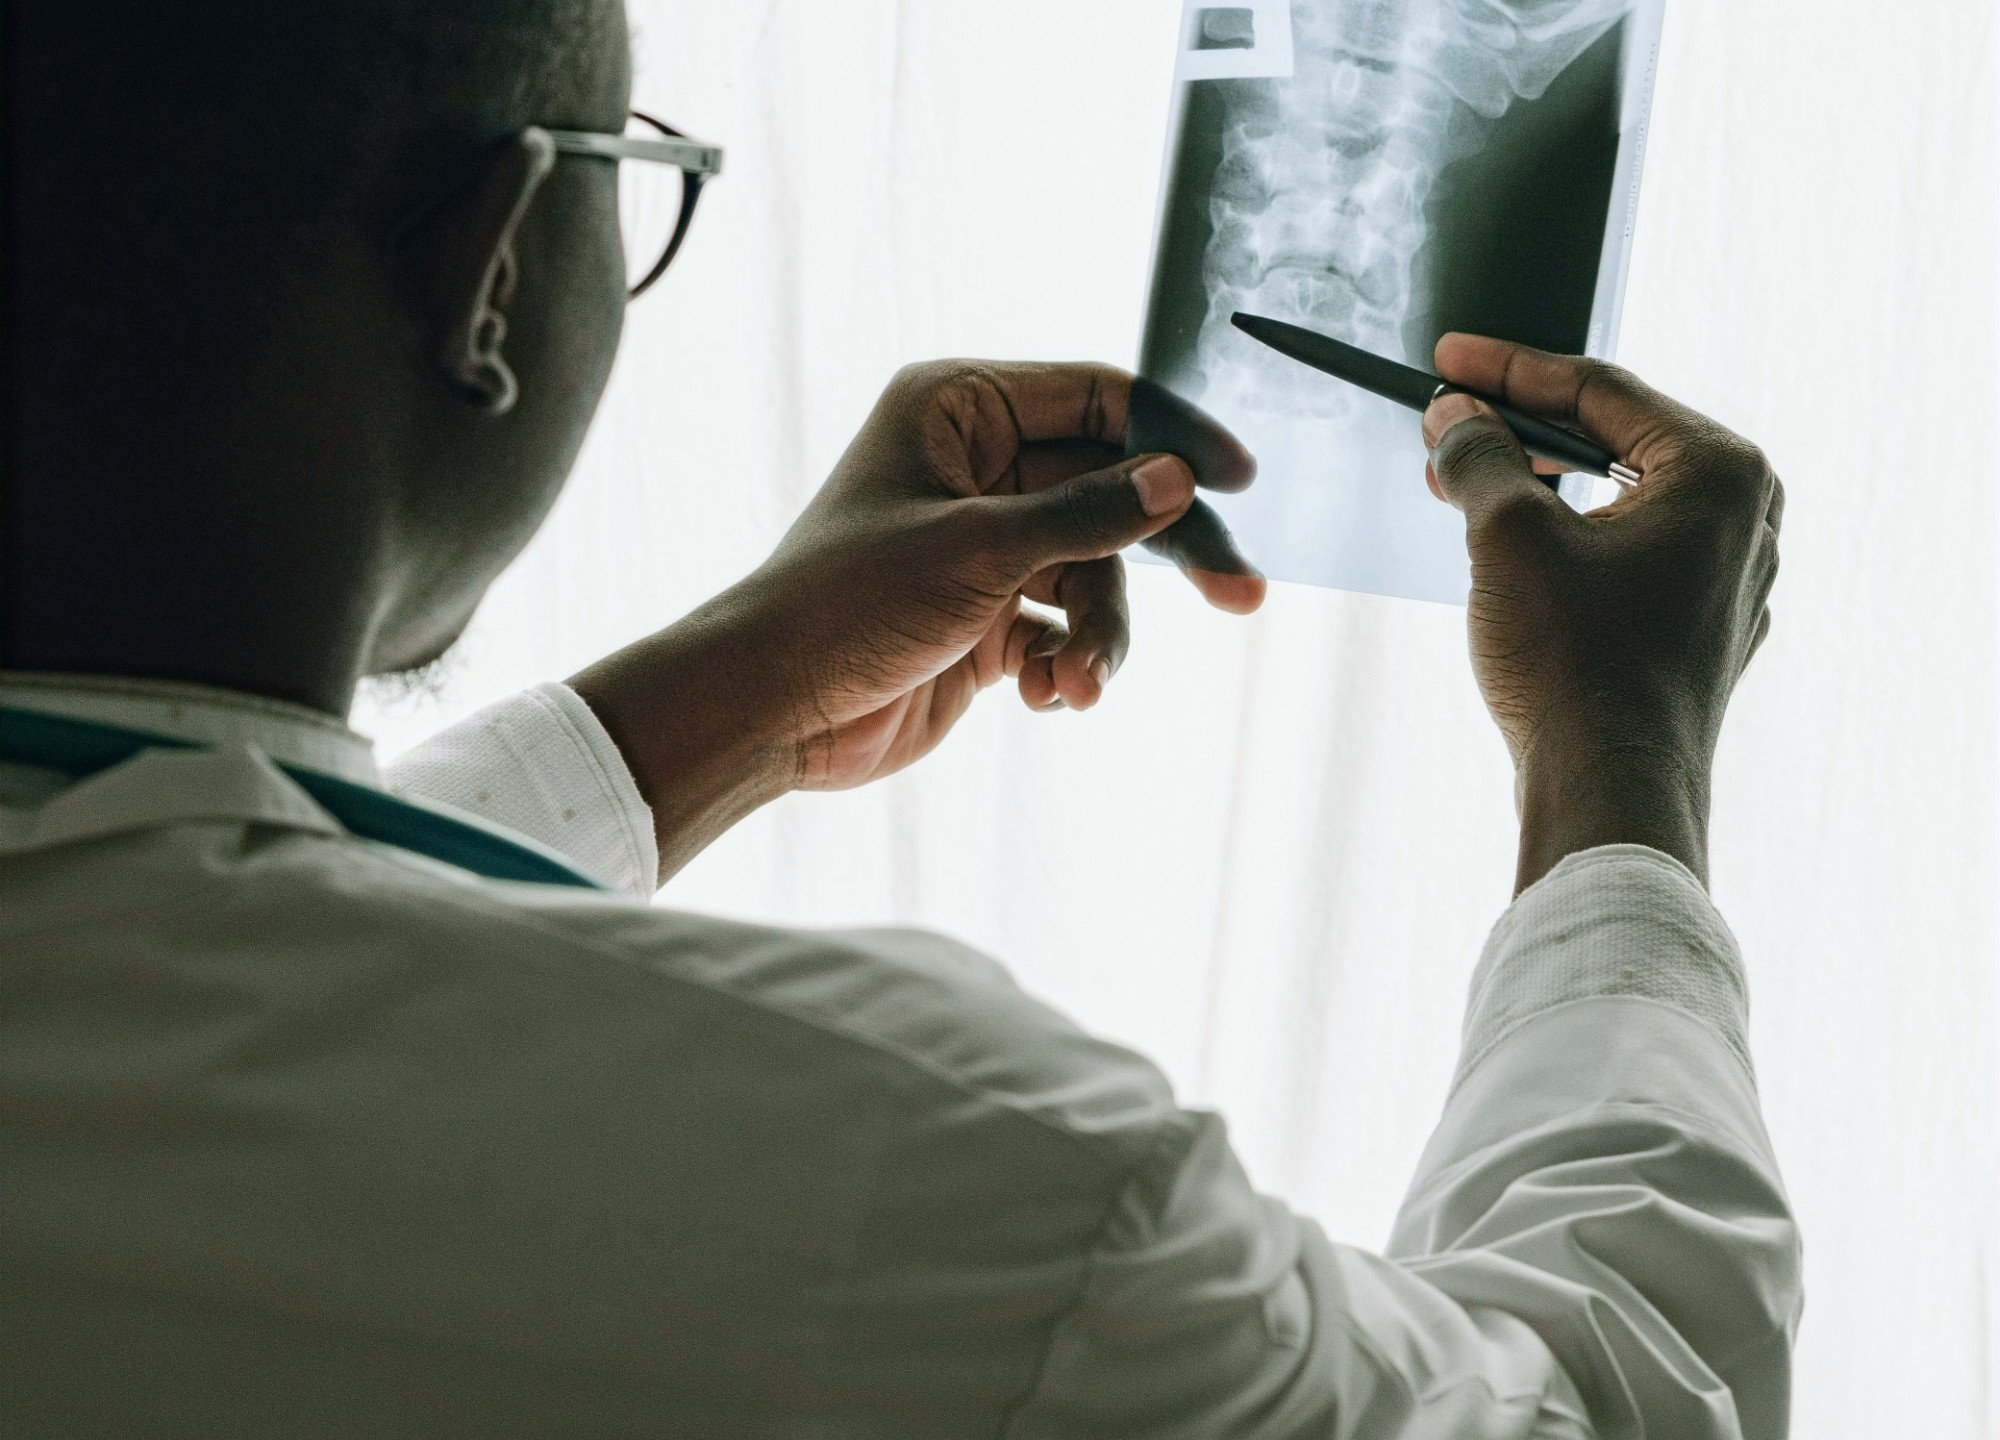 Doctor examining an x-ray from a patient